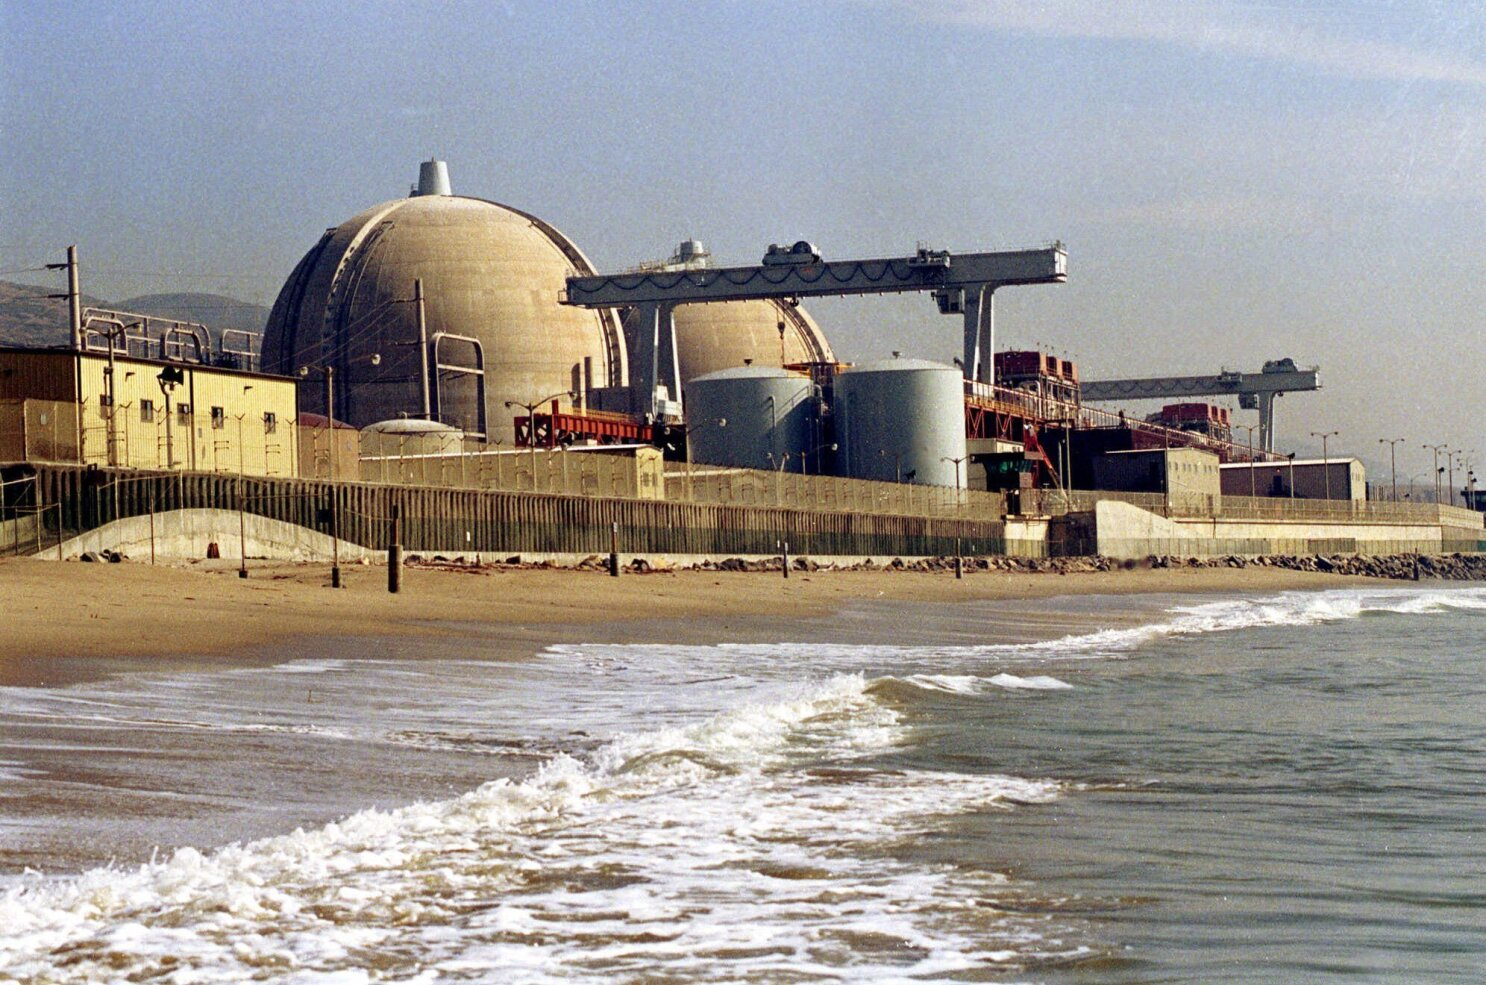 Internal reports contradict regulators' public findings over San Onofre spent fuel